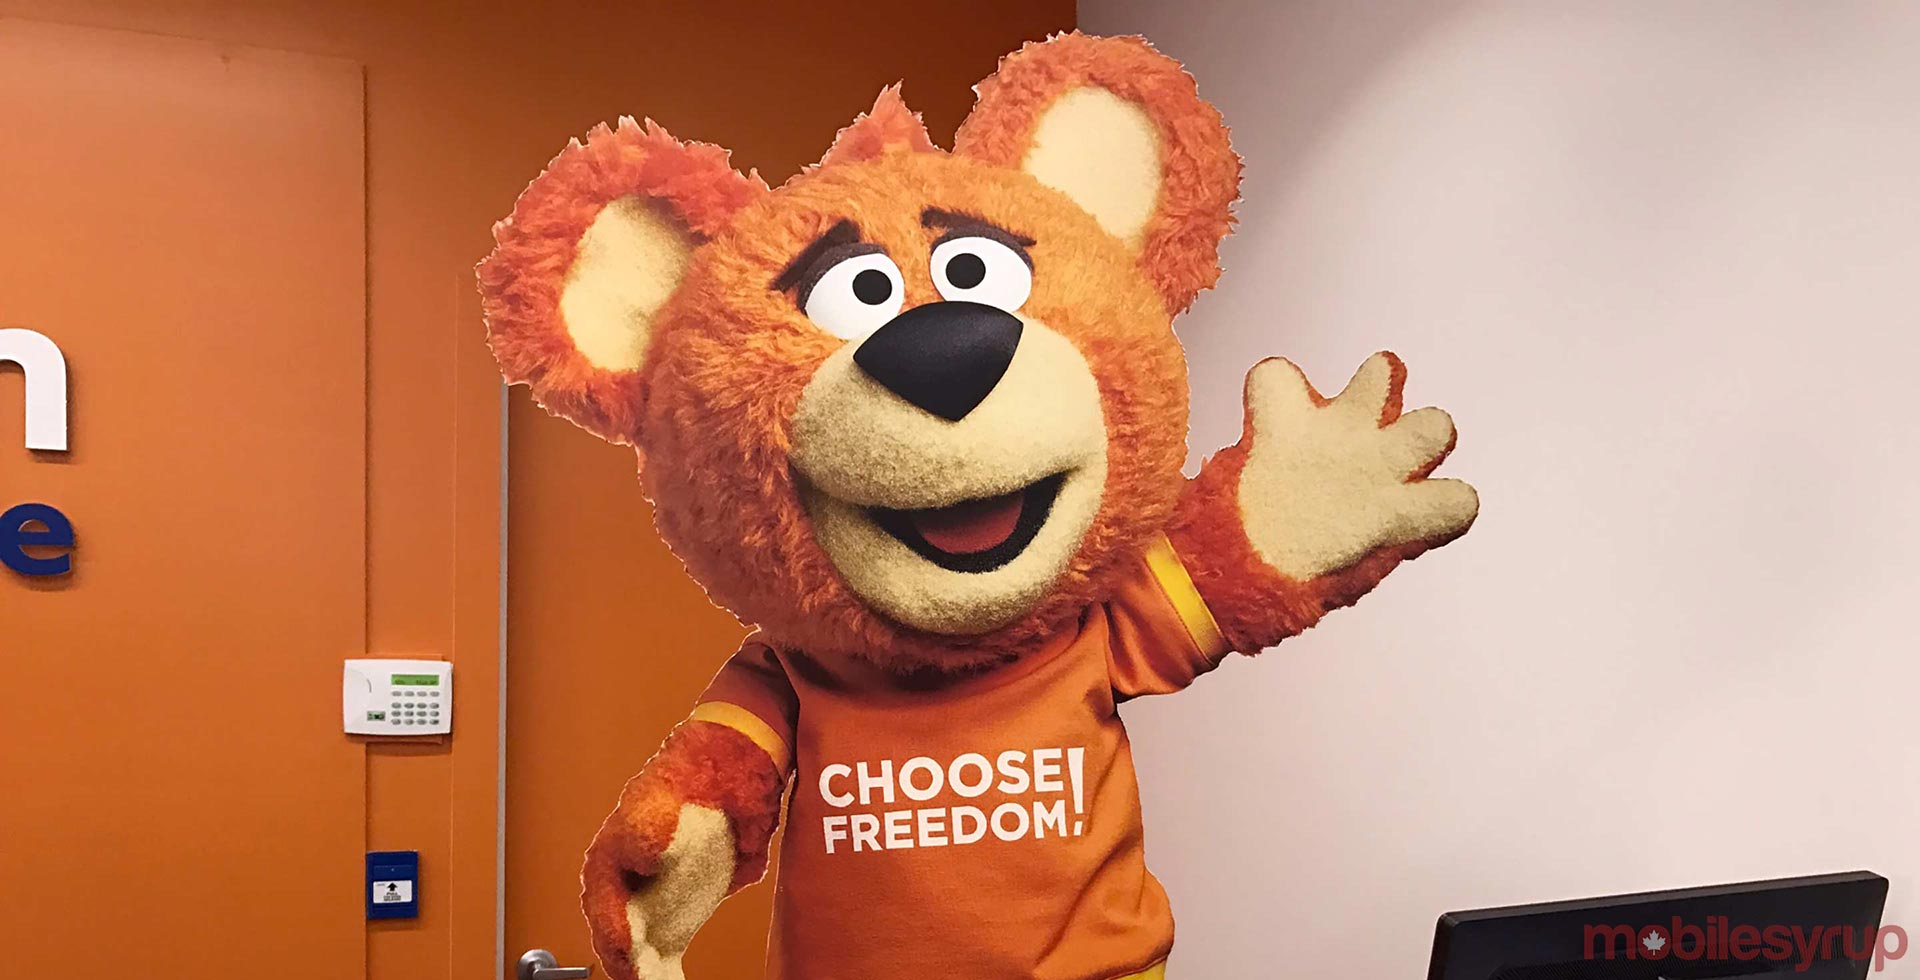 freedom mobile new lte plans - freedom bear